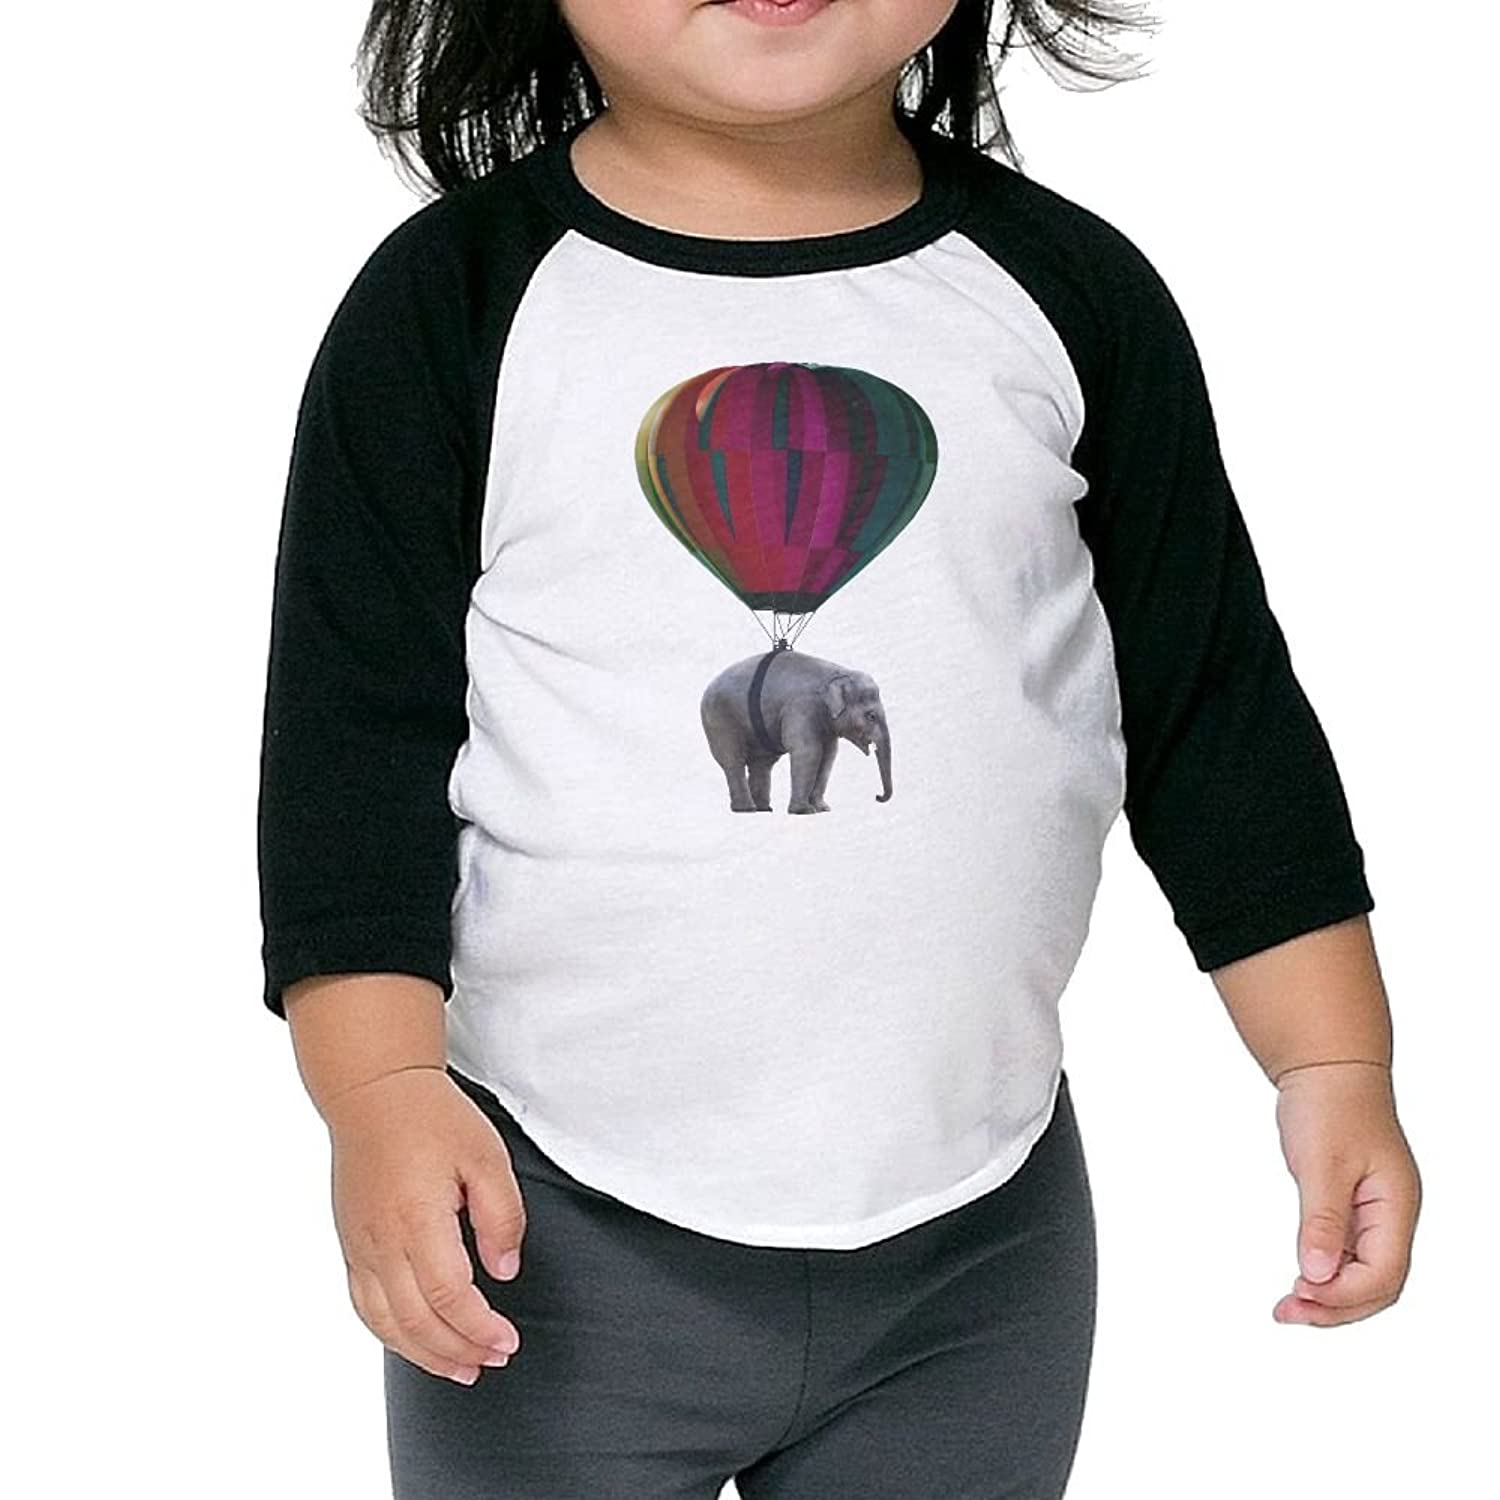 Nice CHENLY Unisex Kid's Sleeves Soft Elephant Hot Ballboon Cotton 3/4 Sleeves T-Shirt For Kids hot sale